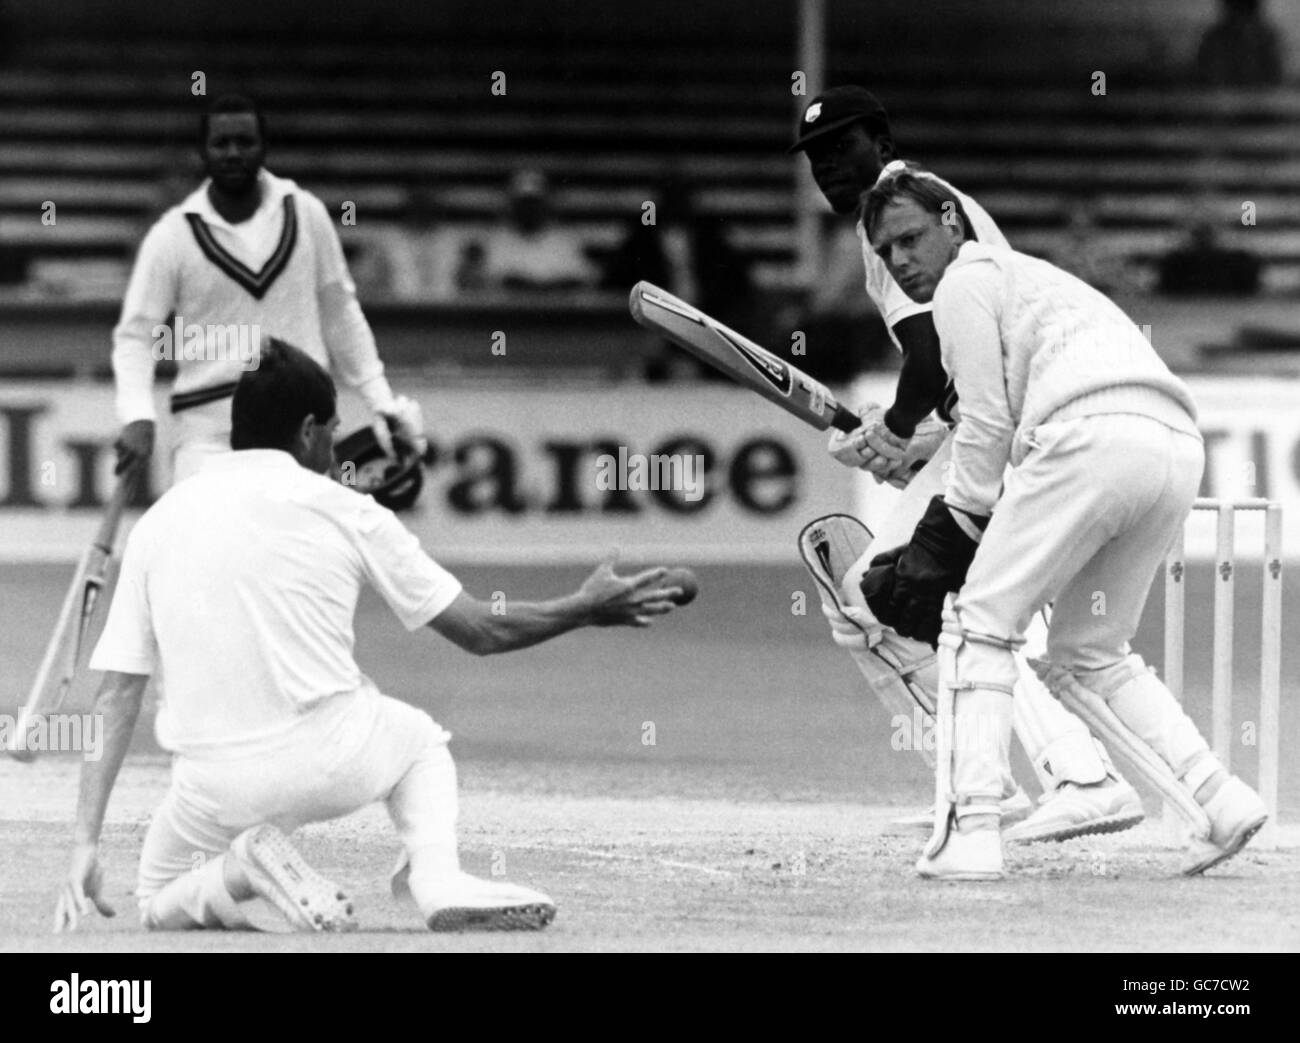 Cricket - West Indies in England 1988 (1st Test) - England v West Indies - Trent Bridge, Nottingham - Stock Image